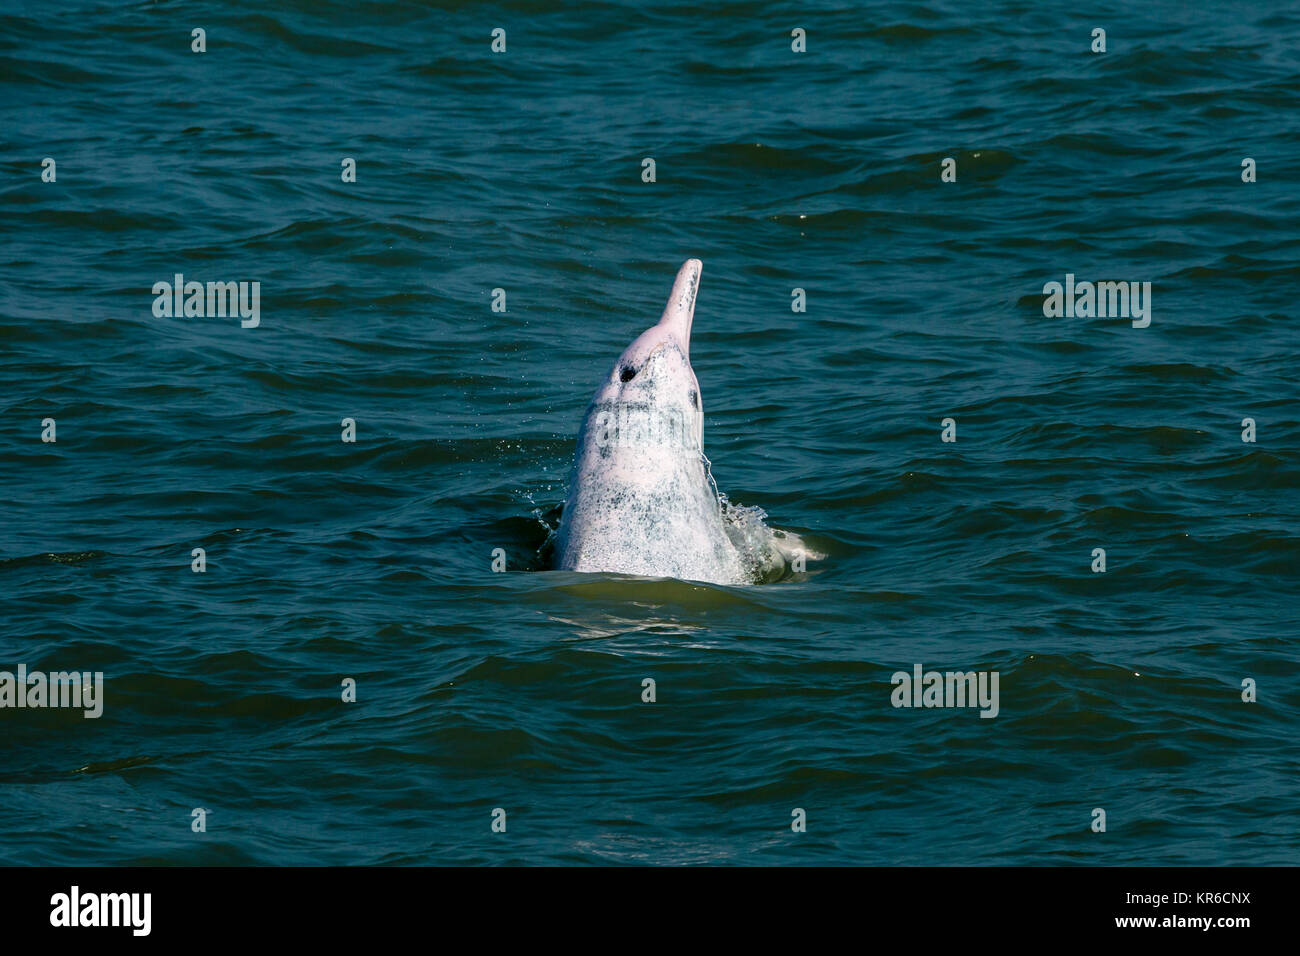 Indo-Pacific Humpback Dolphin / Chinese White Dolphin / Pink Dolphin (Sousa Chinensis) in the waters of Hong Kong, - Stock Image